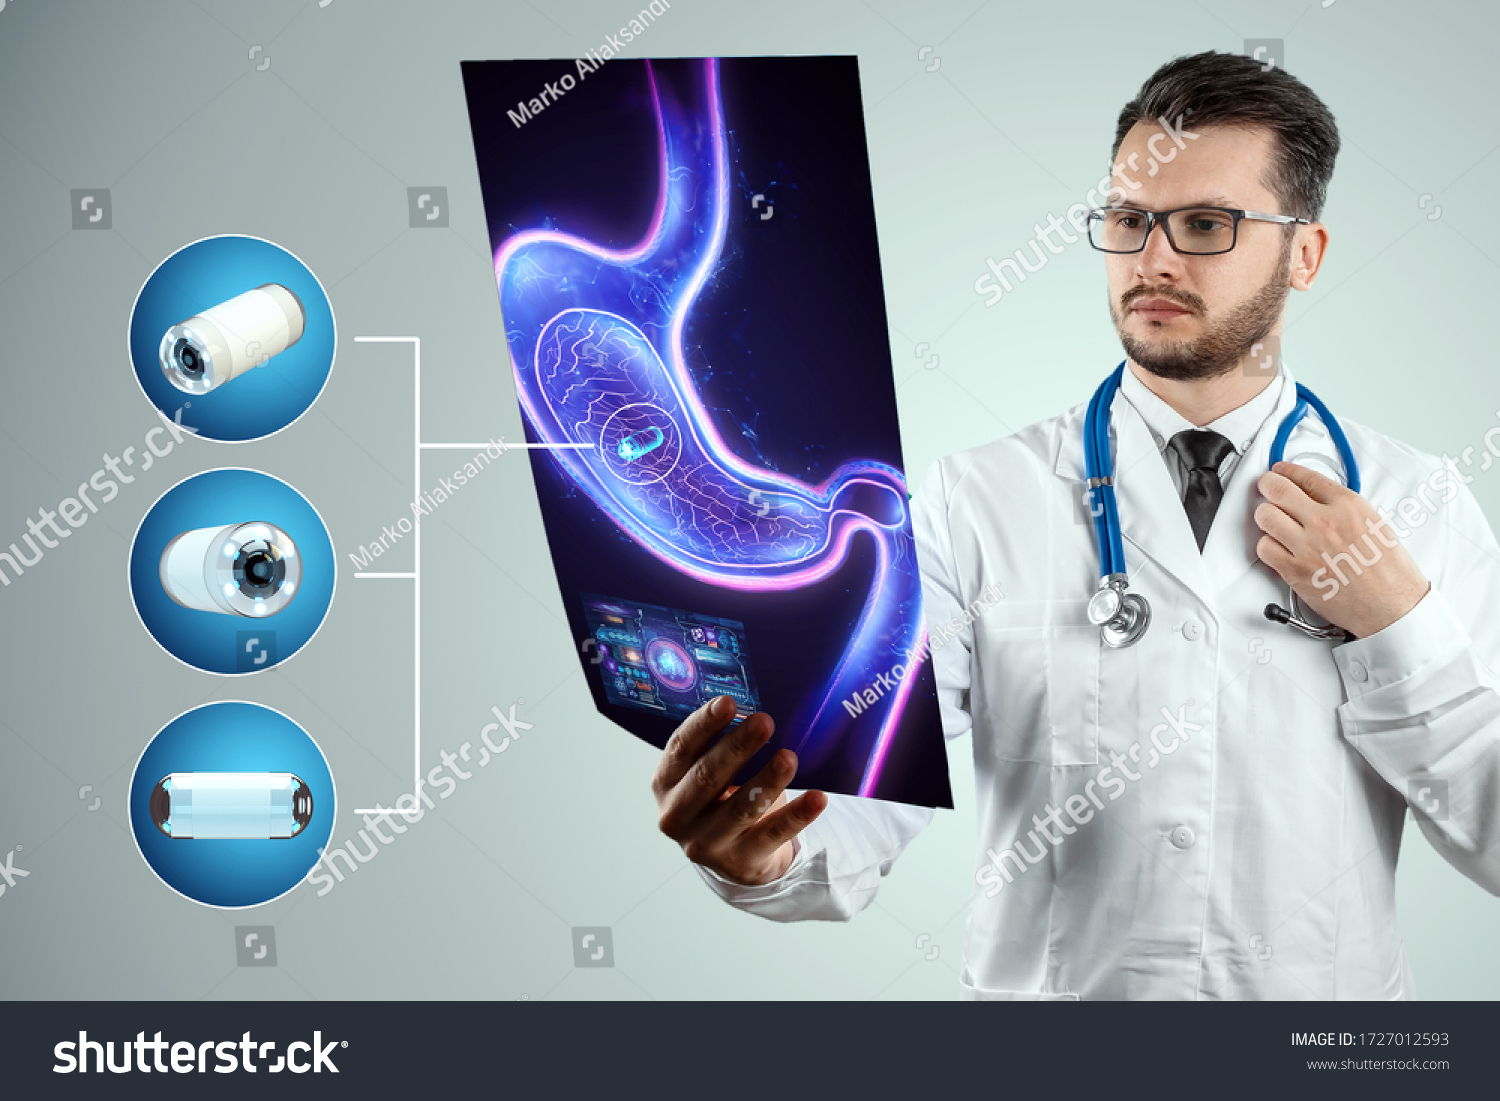 Doctor against the background of a hologram of the stomach, A camera the size of a capsule in the stomach, an endoscopy procedure. Digestive tract disease concept. Mixed medium, copy space #1727012593